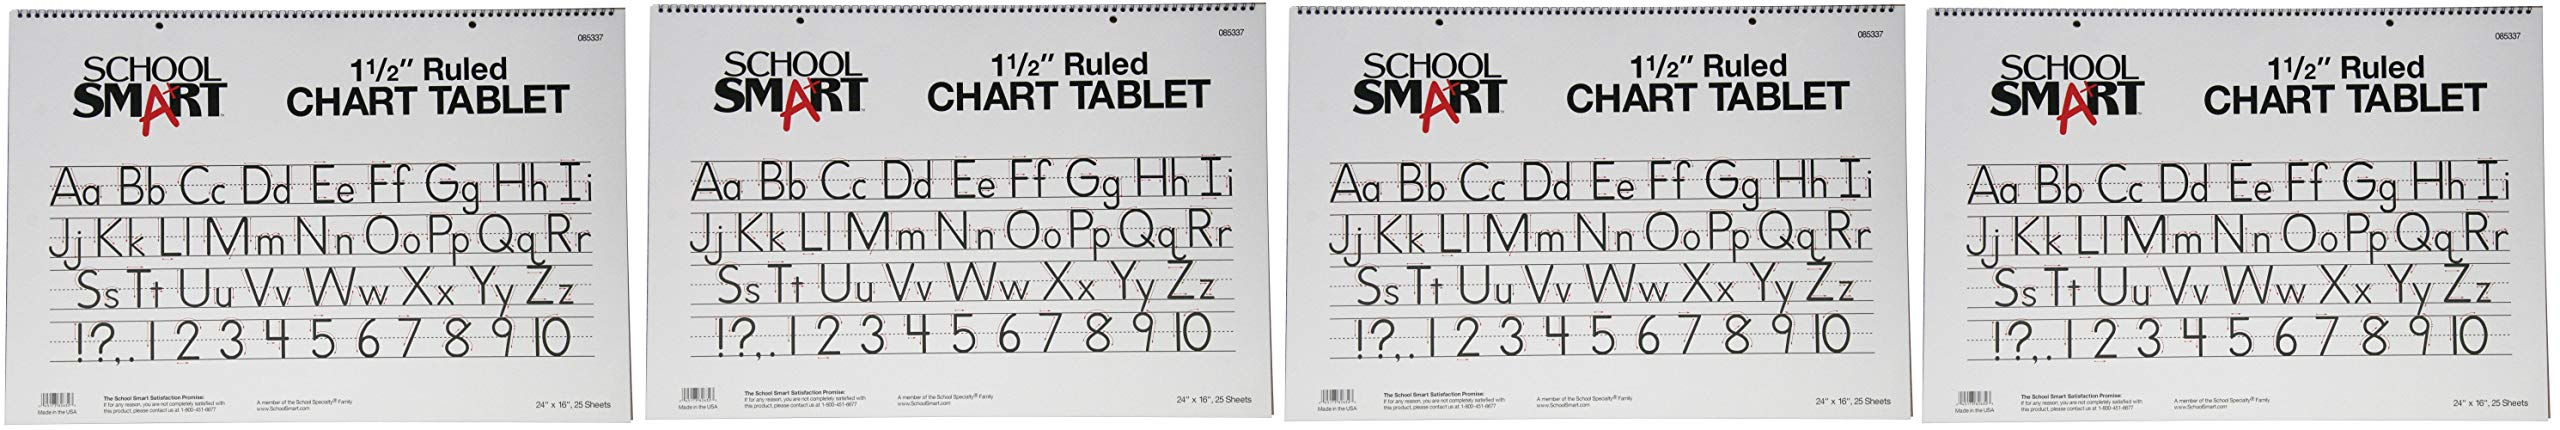 School Smart Chart Tablet, 24 x 16 Inches, 1-1/2 Inch Skip Line, 25 Sheets (4-(Pack))